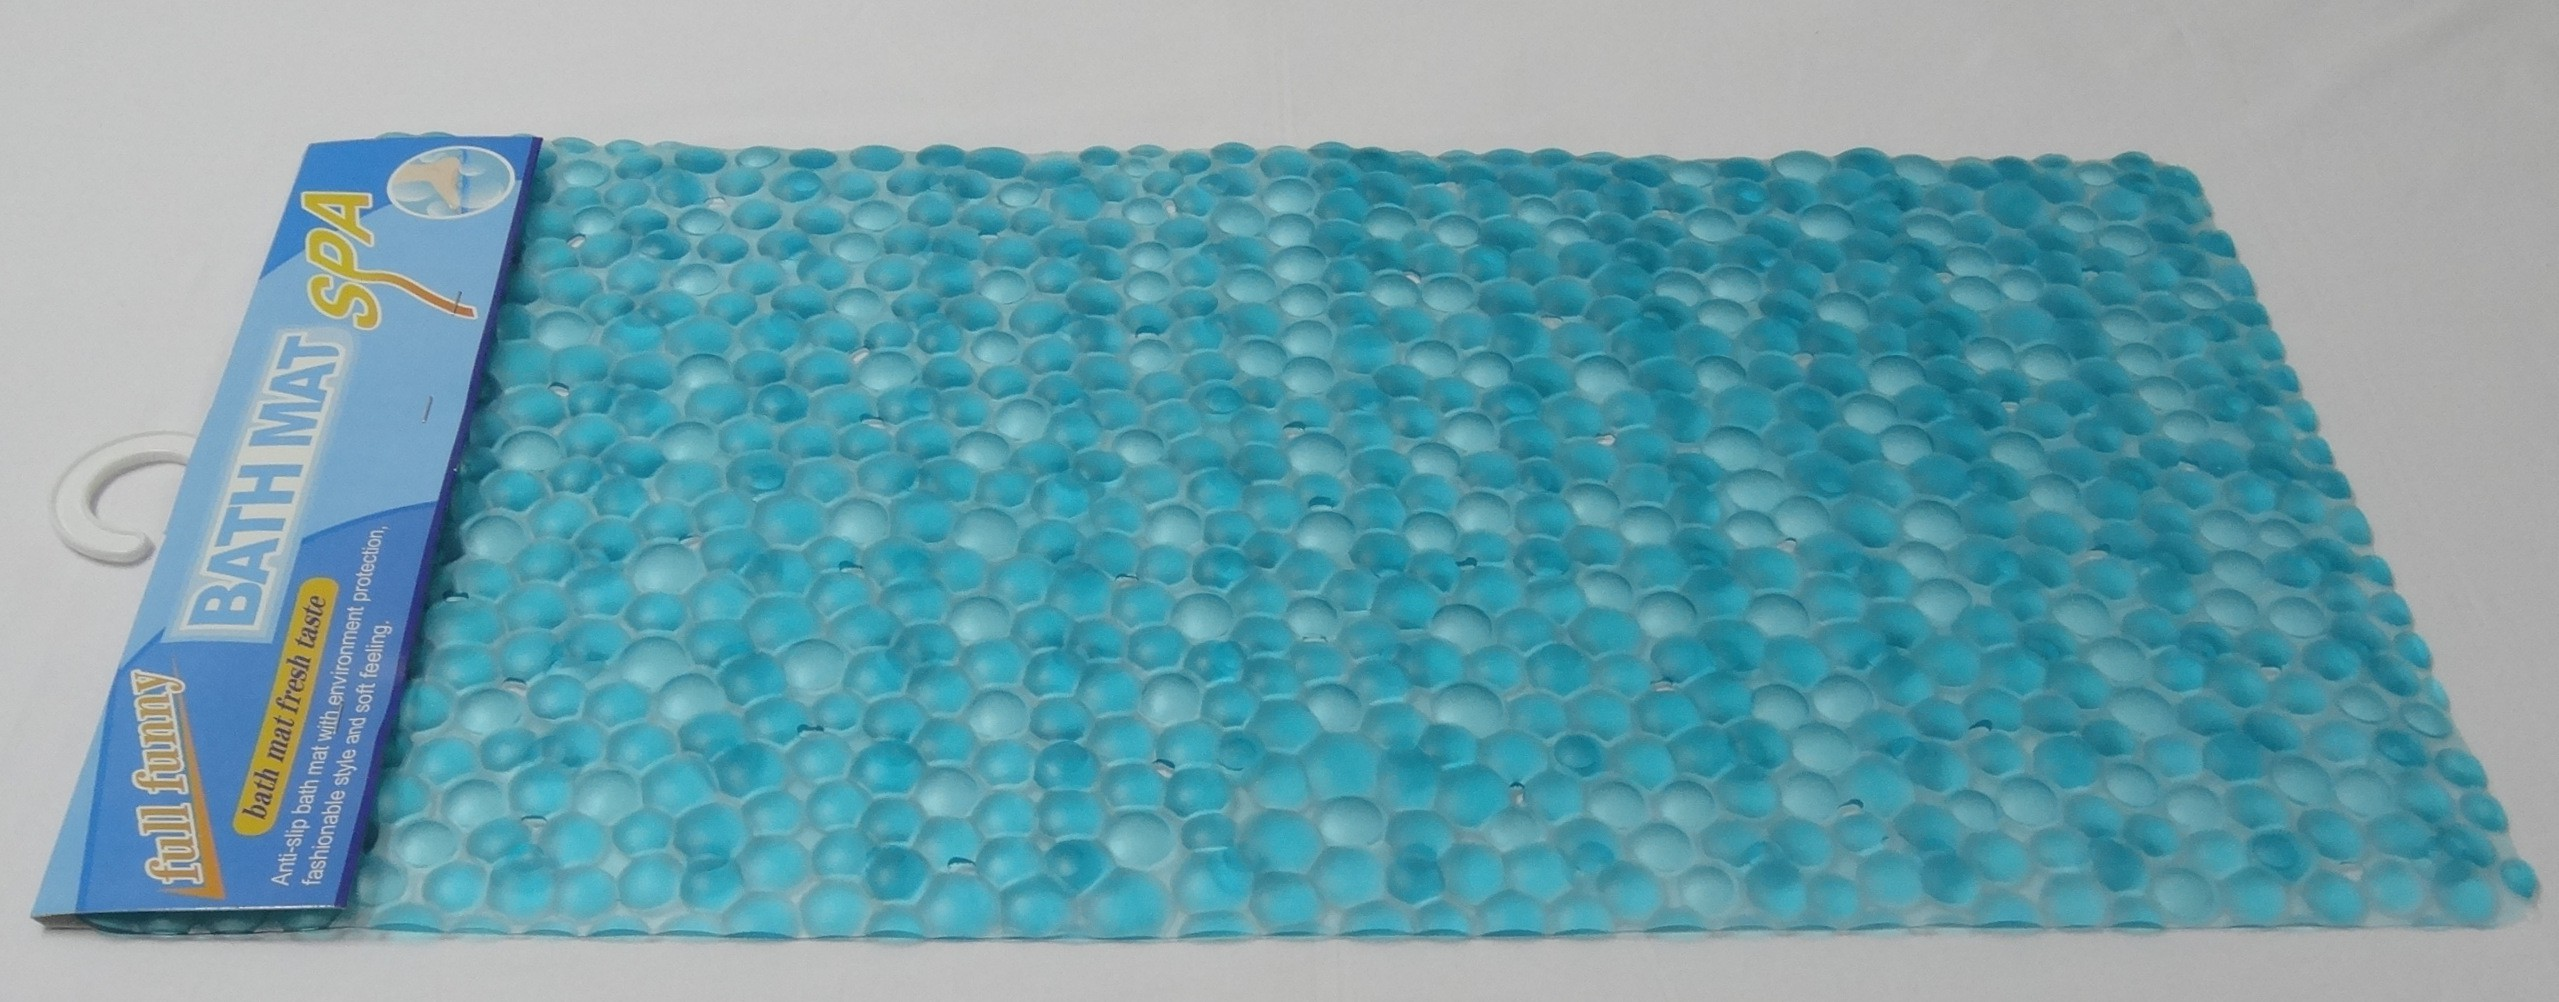 Decorika PVC Medium Bath Mat Bath Mat